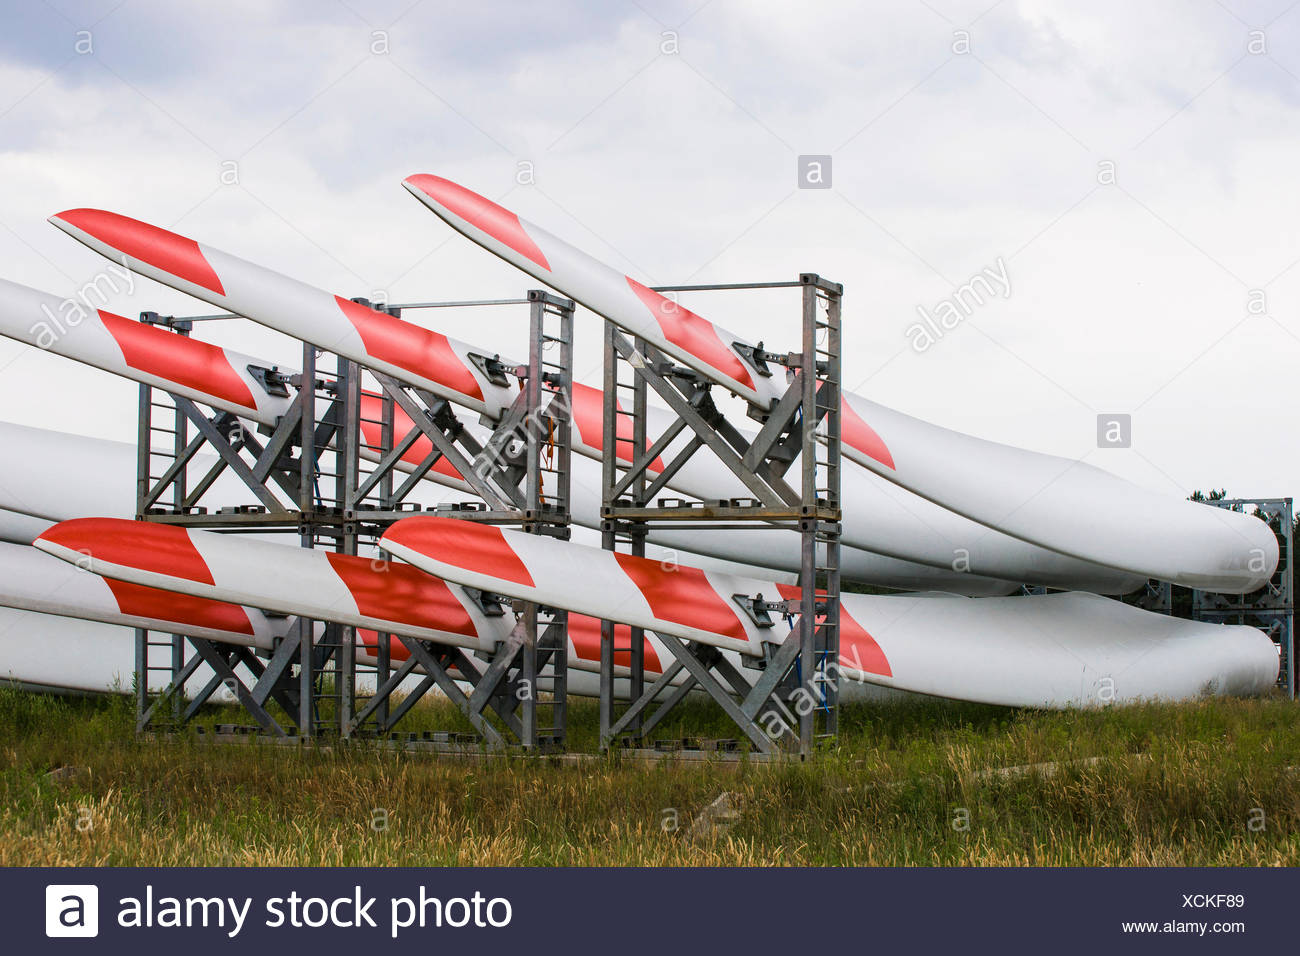 Blade Yard, storage for rotor blades of wind turbines, of